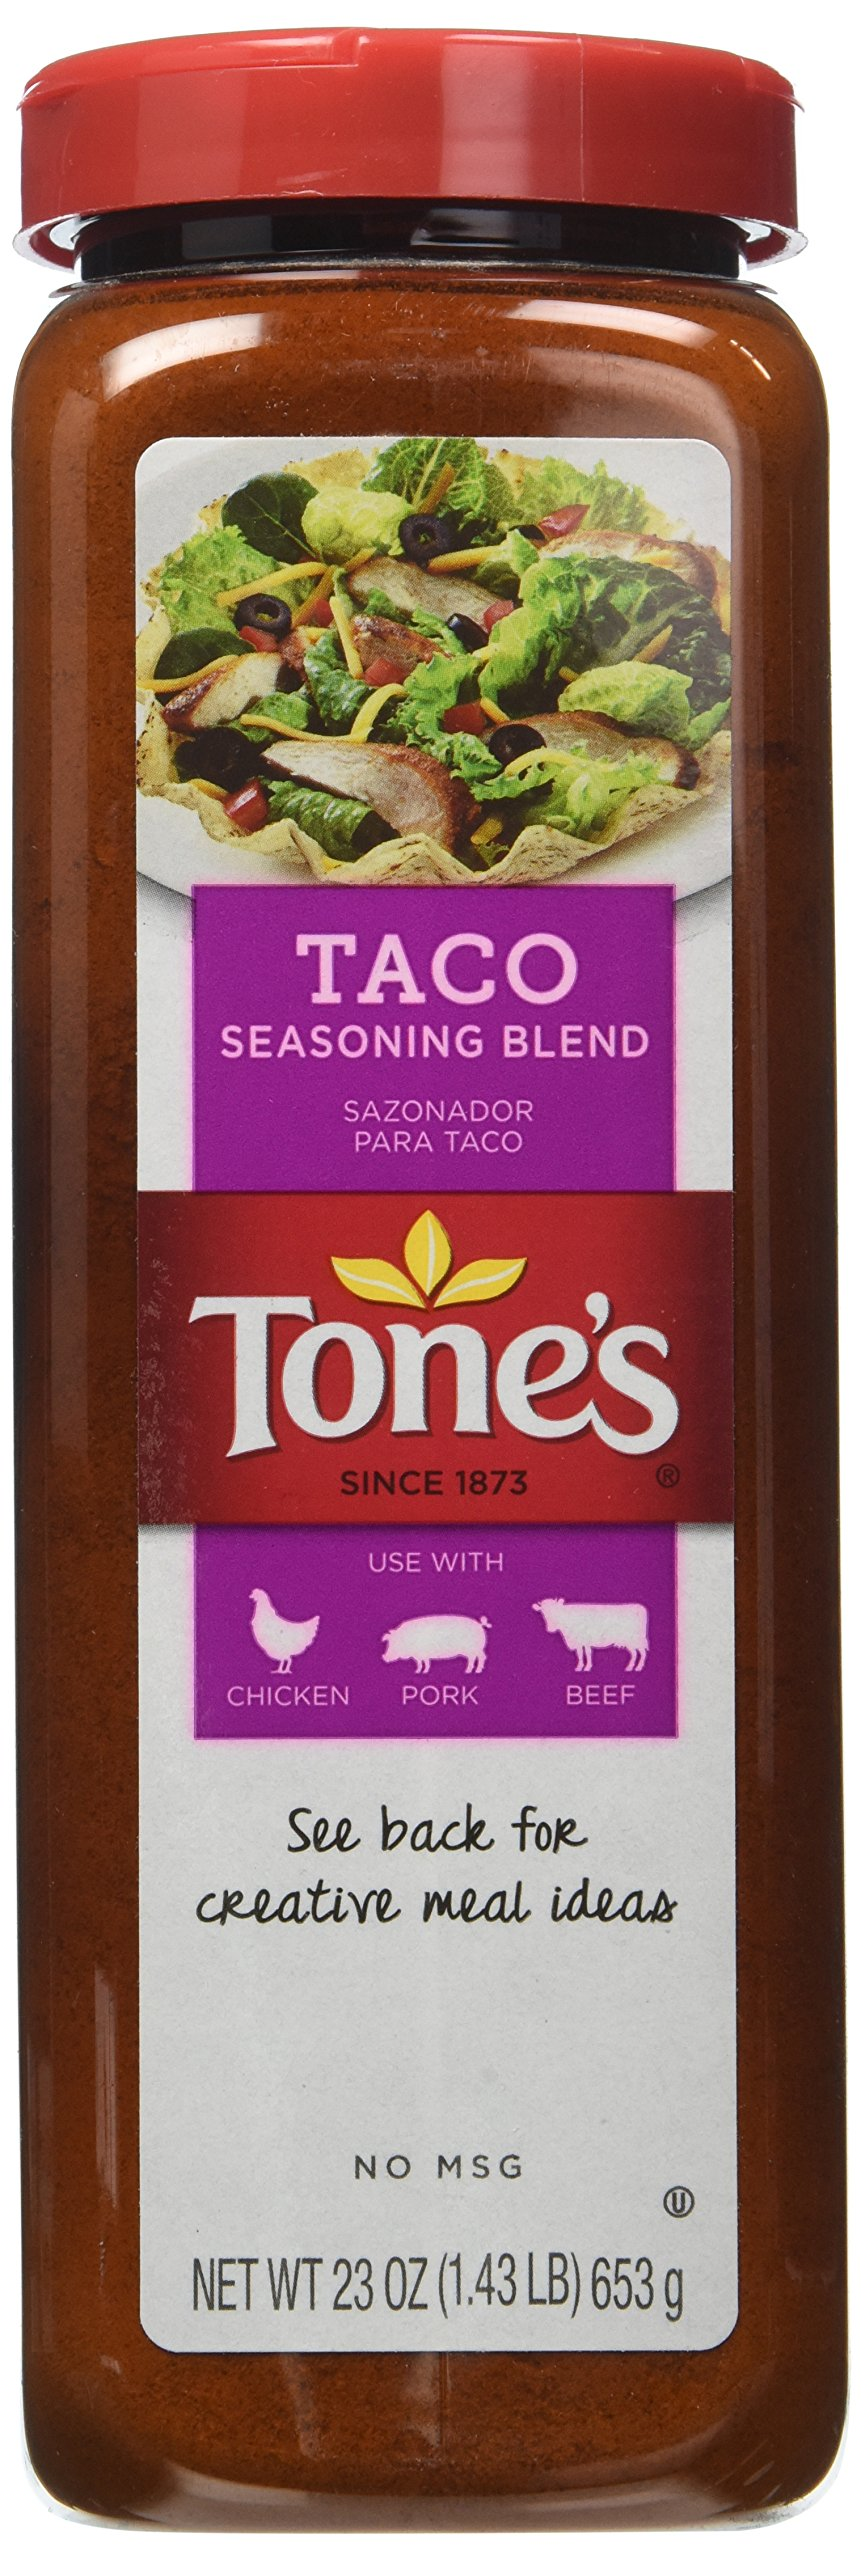 Tone's Spices Taco Seasoning Traditional Blend for Mexican Dishes - Net Weight 23 oz